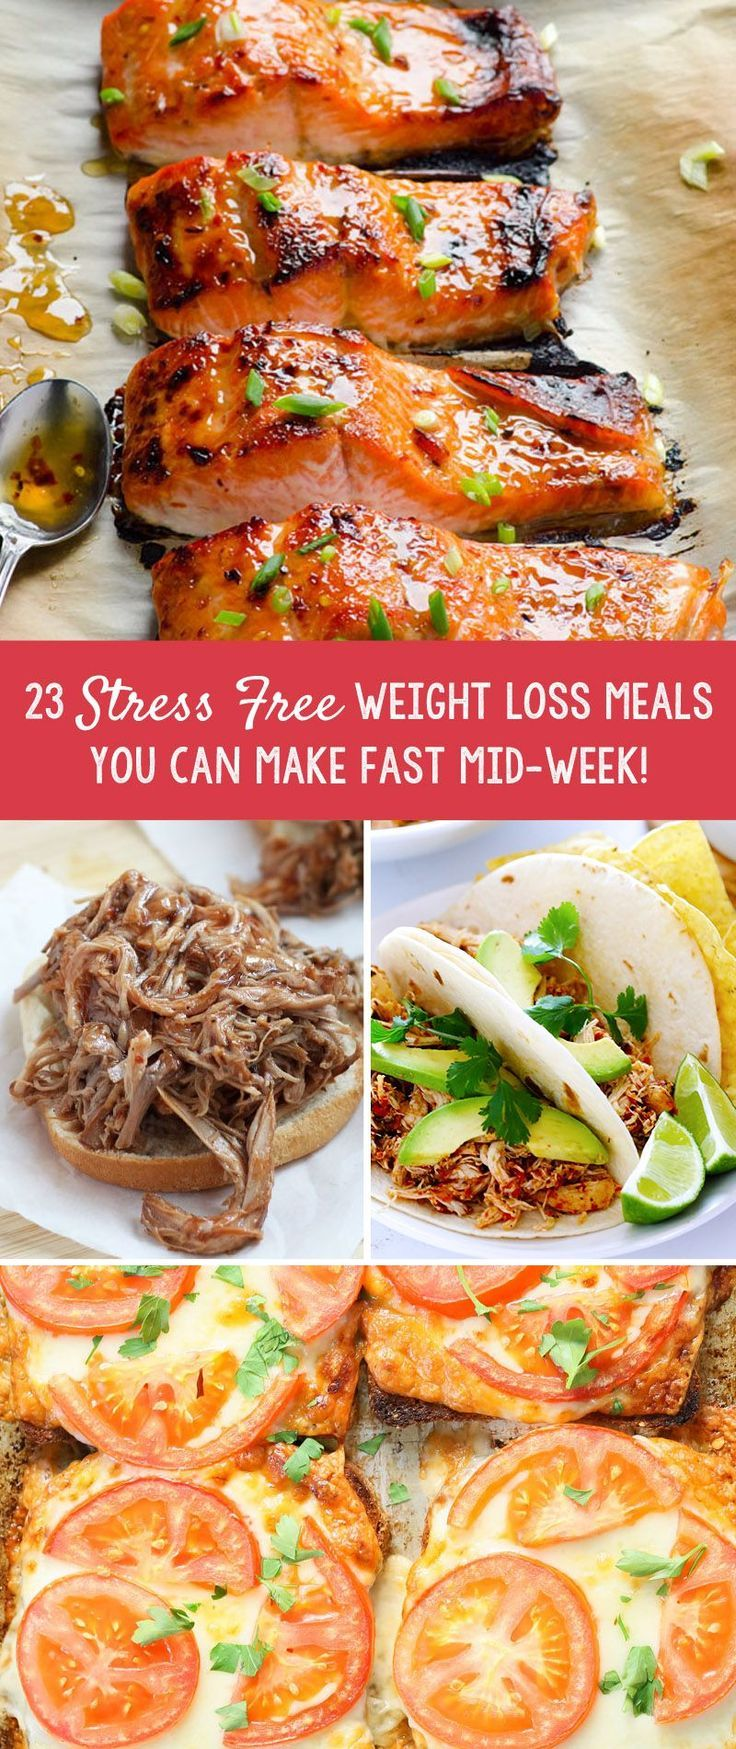 23 Stress Free Weight Loss Meals You Can Make Fast Mid-Week! images